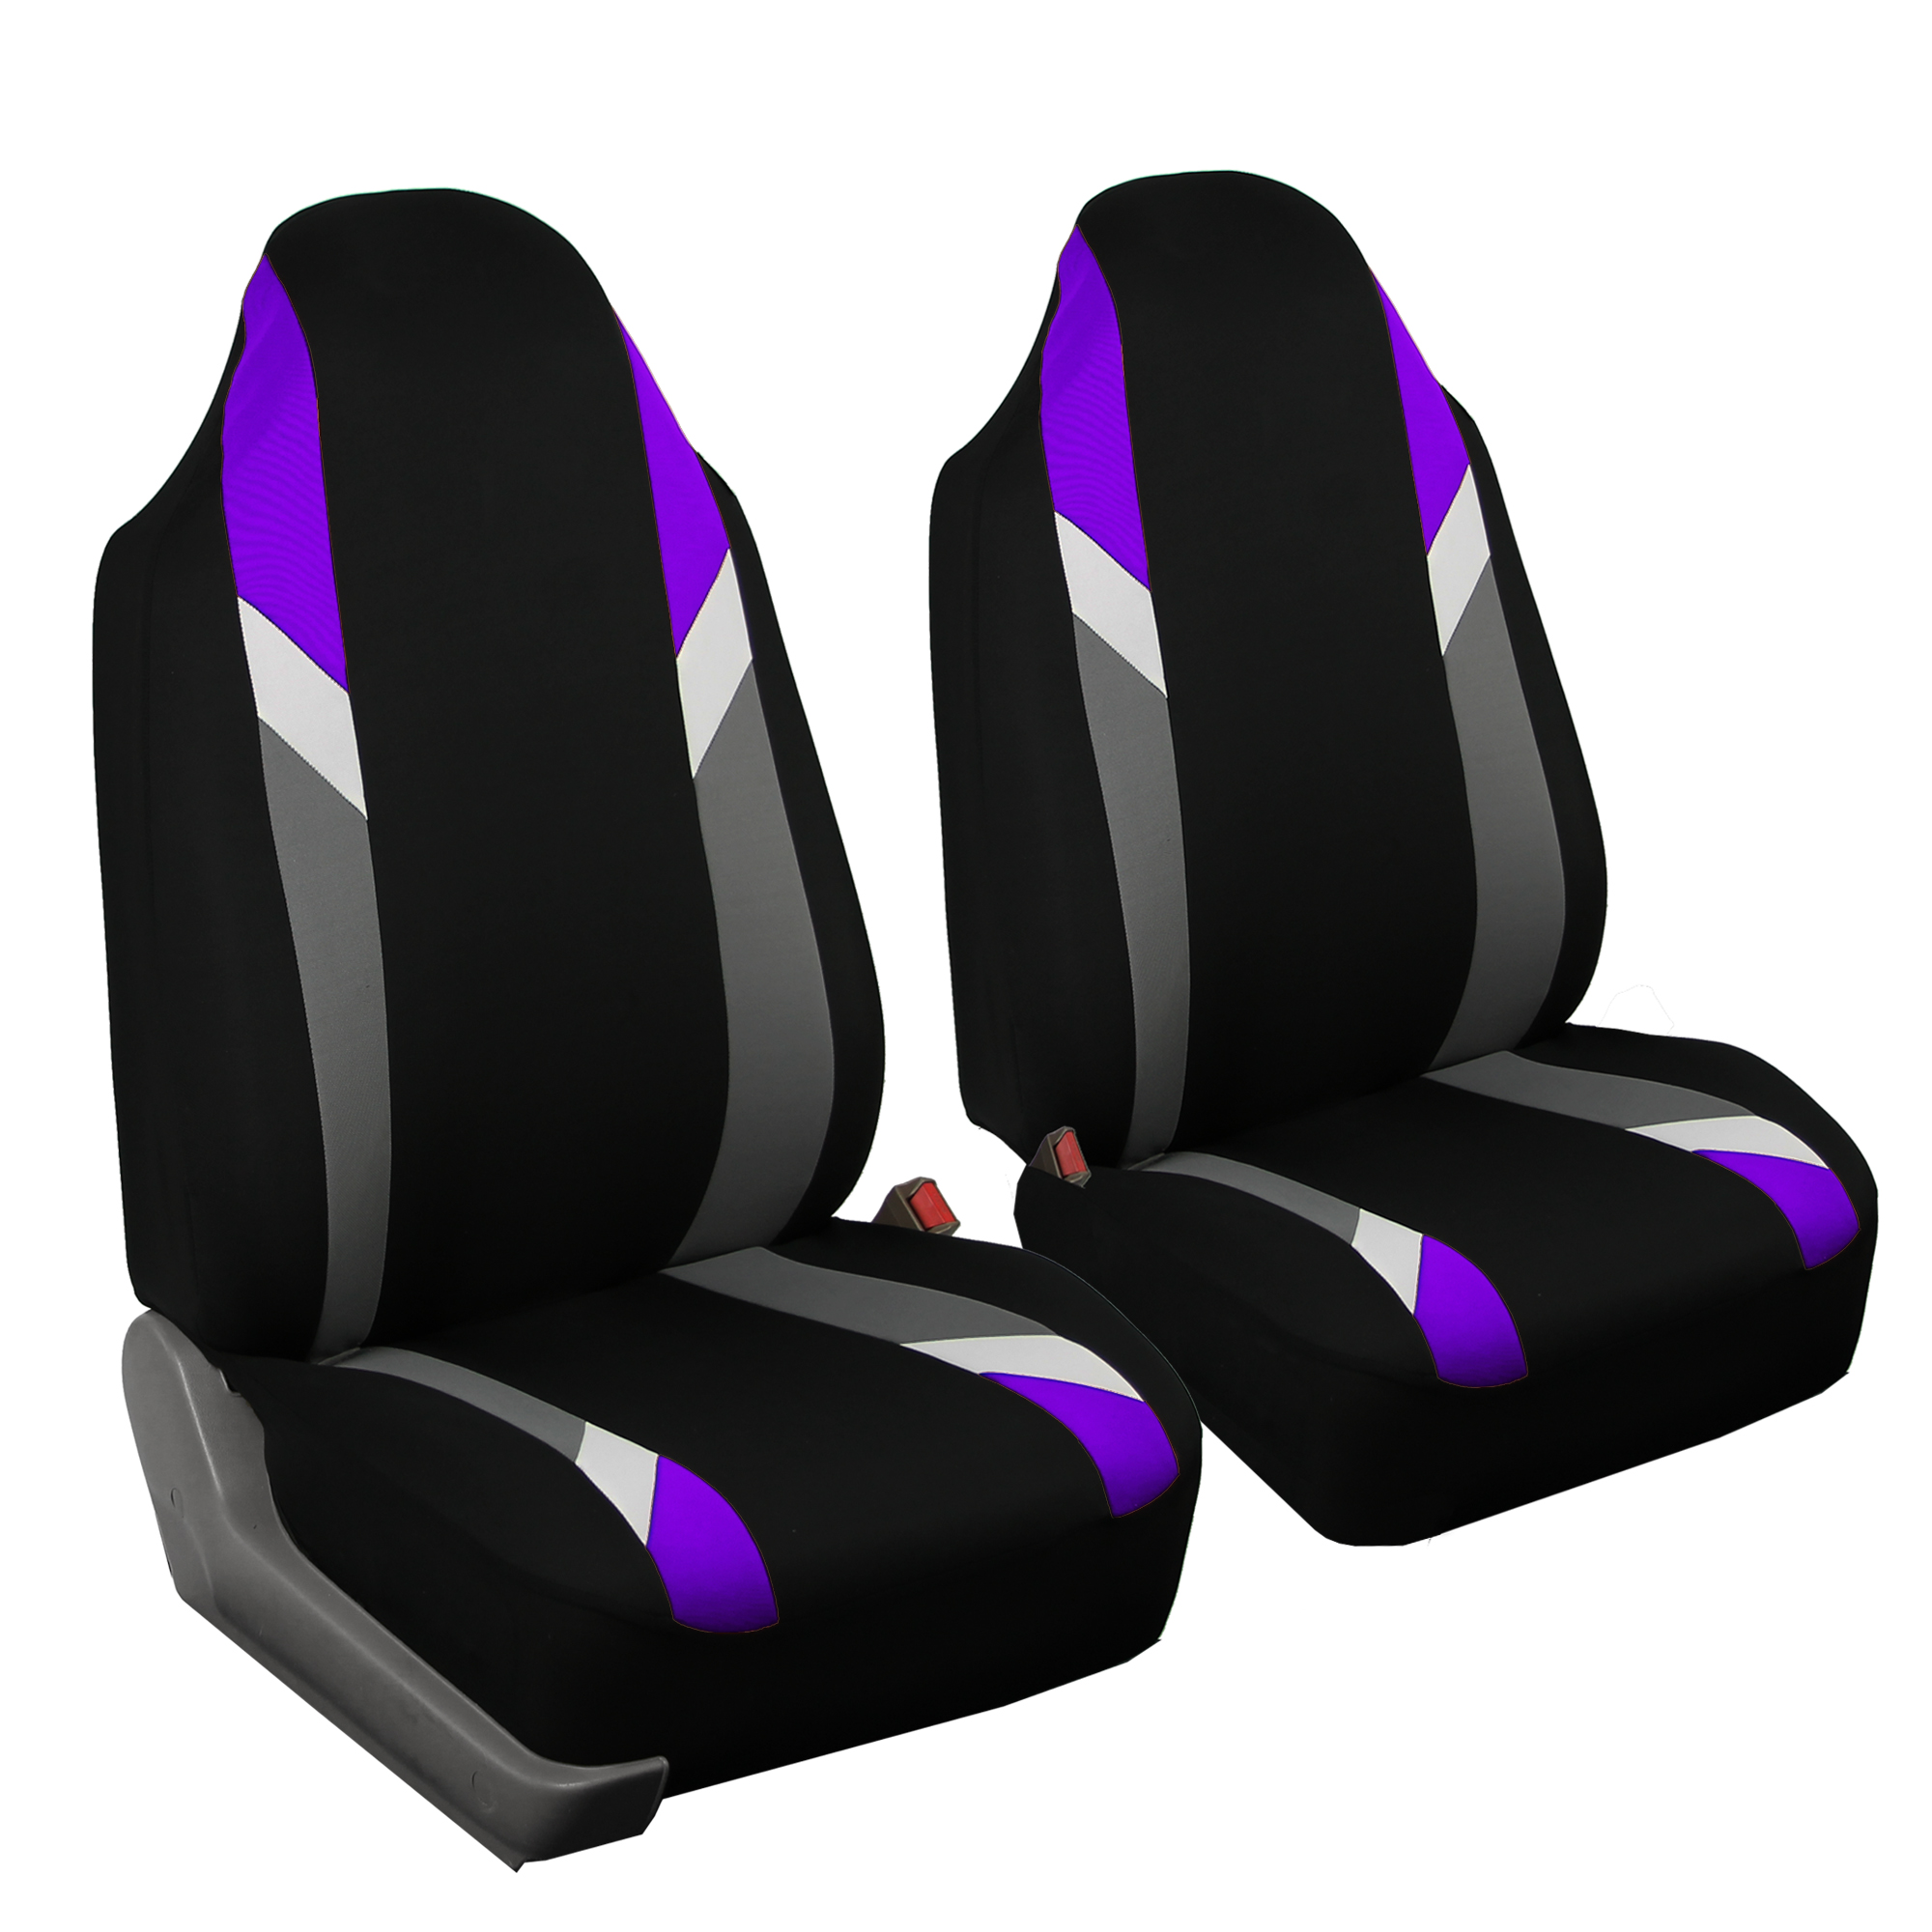 FH GROUP Premium Modernistic Full Set Car Seat Covers, Purple